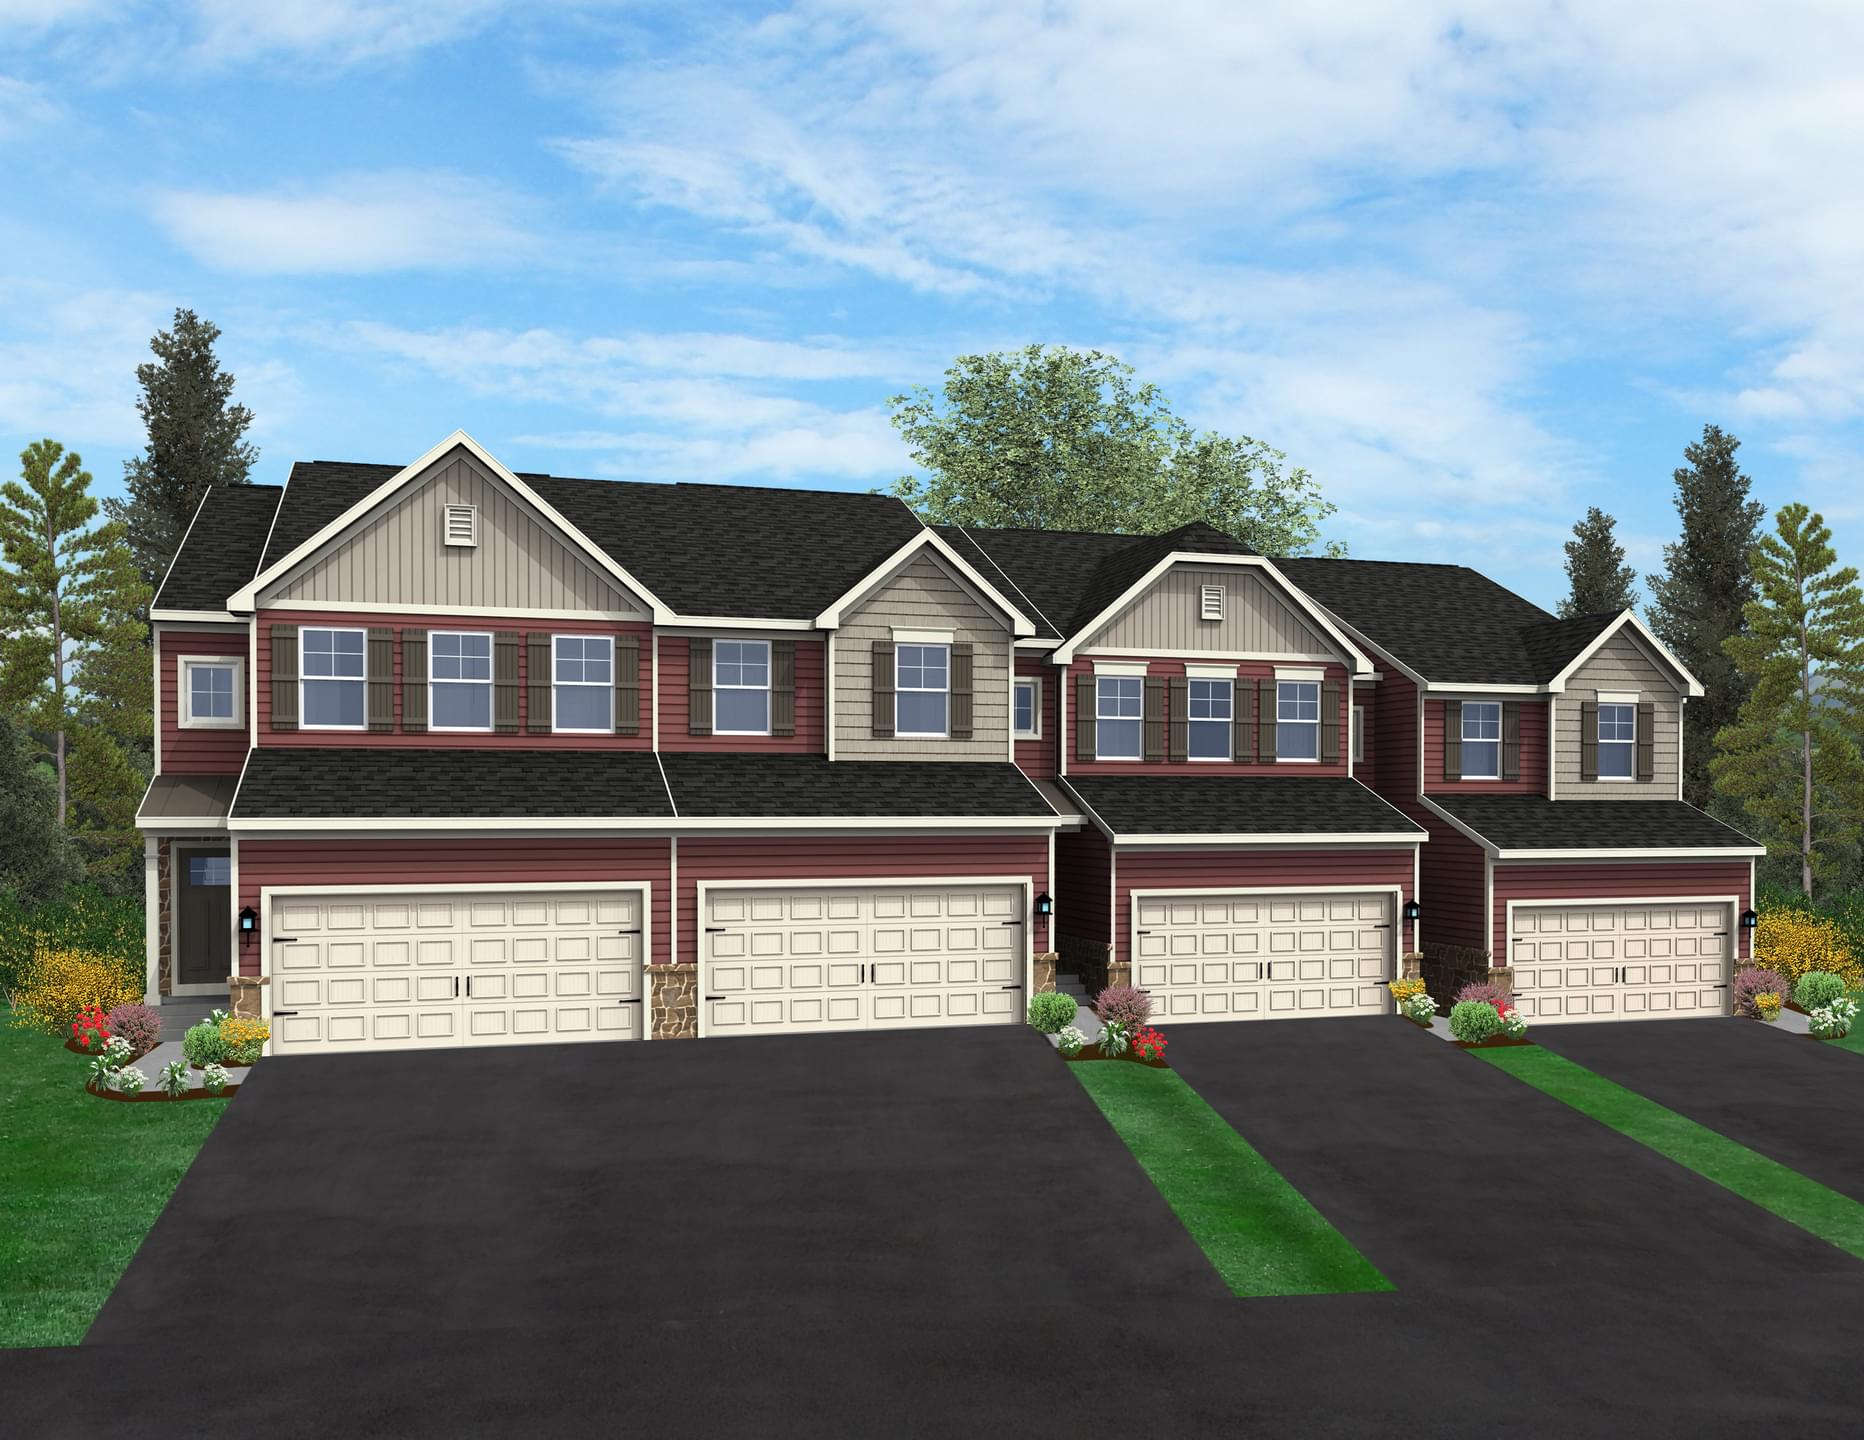 Berks Homes Elevation Image Lilac